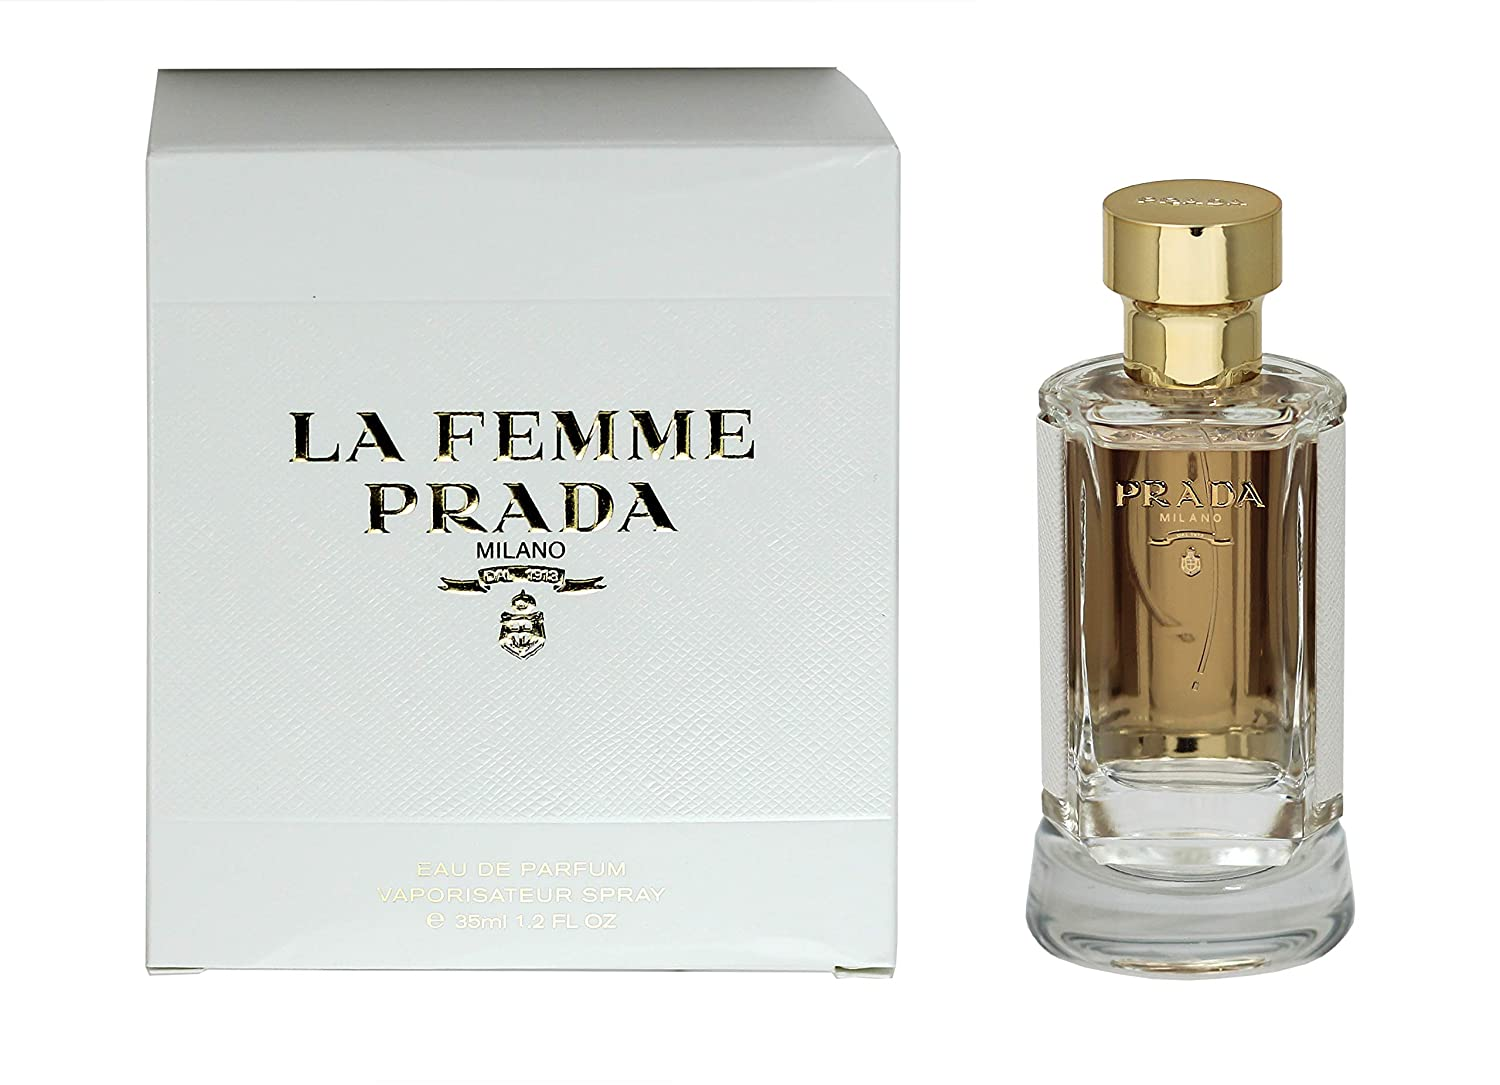 Amazoncom Prada La Femme Eau De Parfum 12oz 35ml Spray Clothing